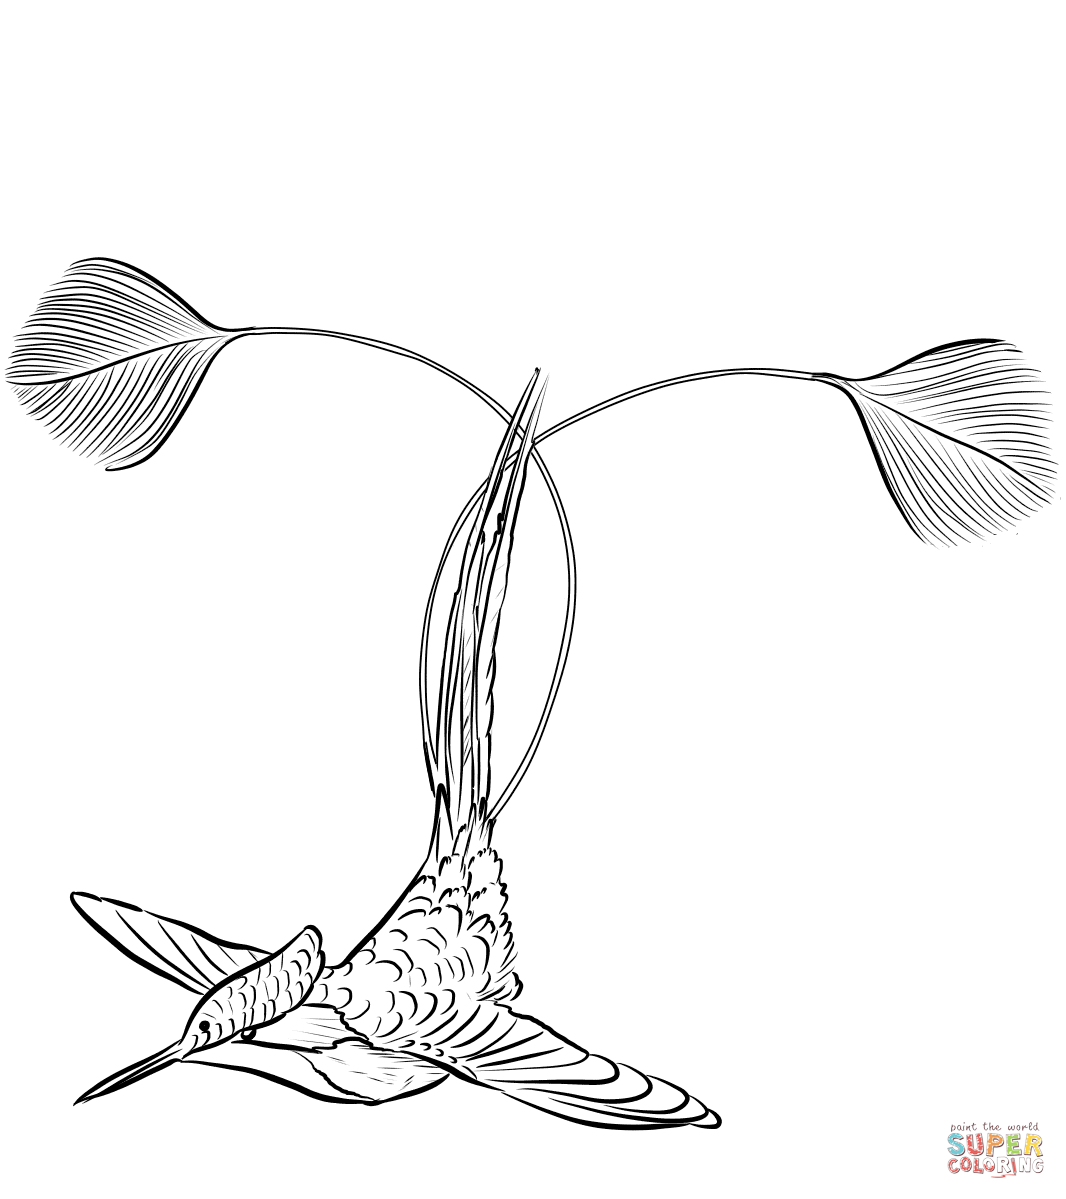 Marvellous Spatuletail Hummingbird Coloring Page